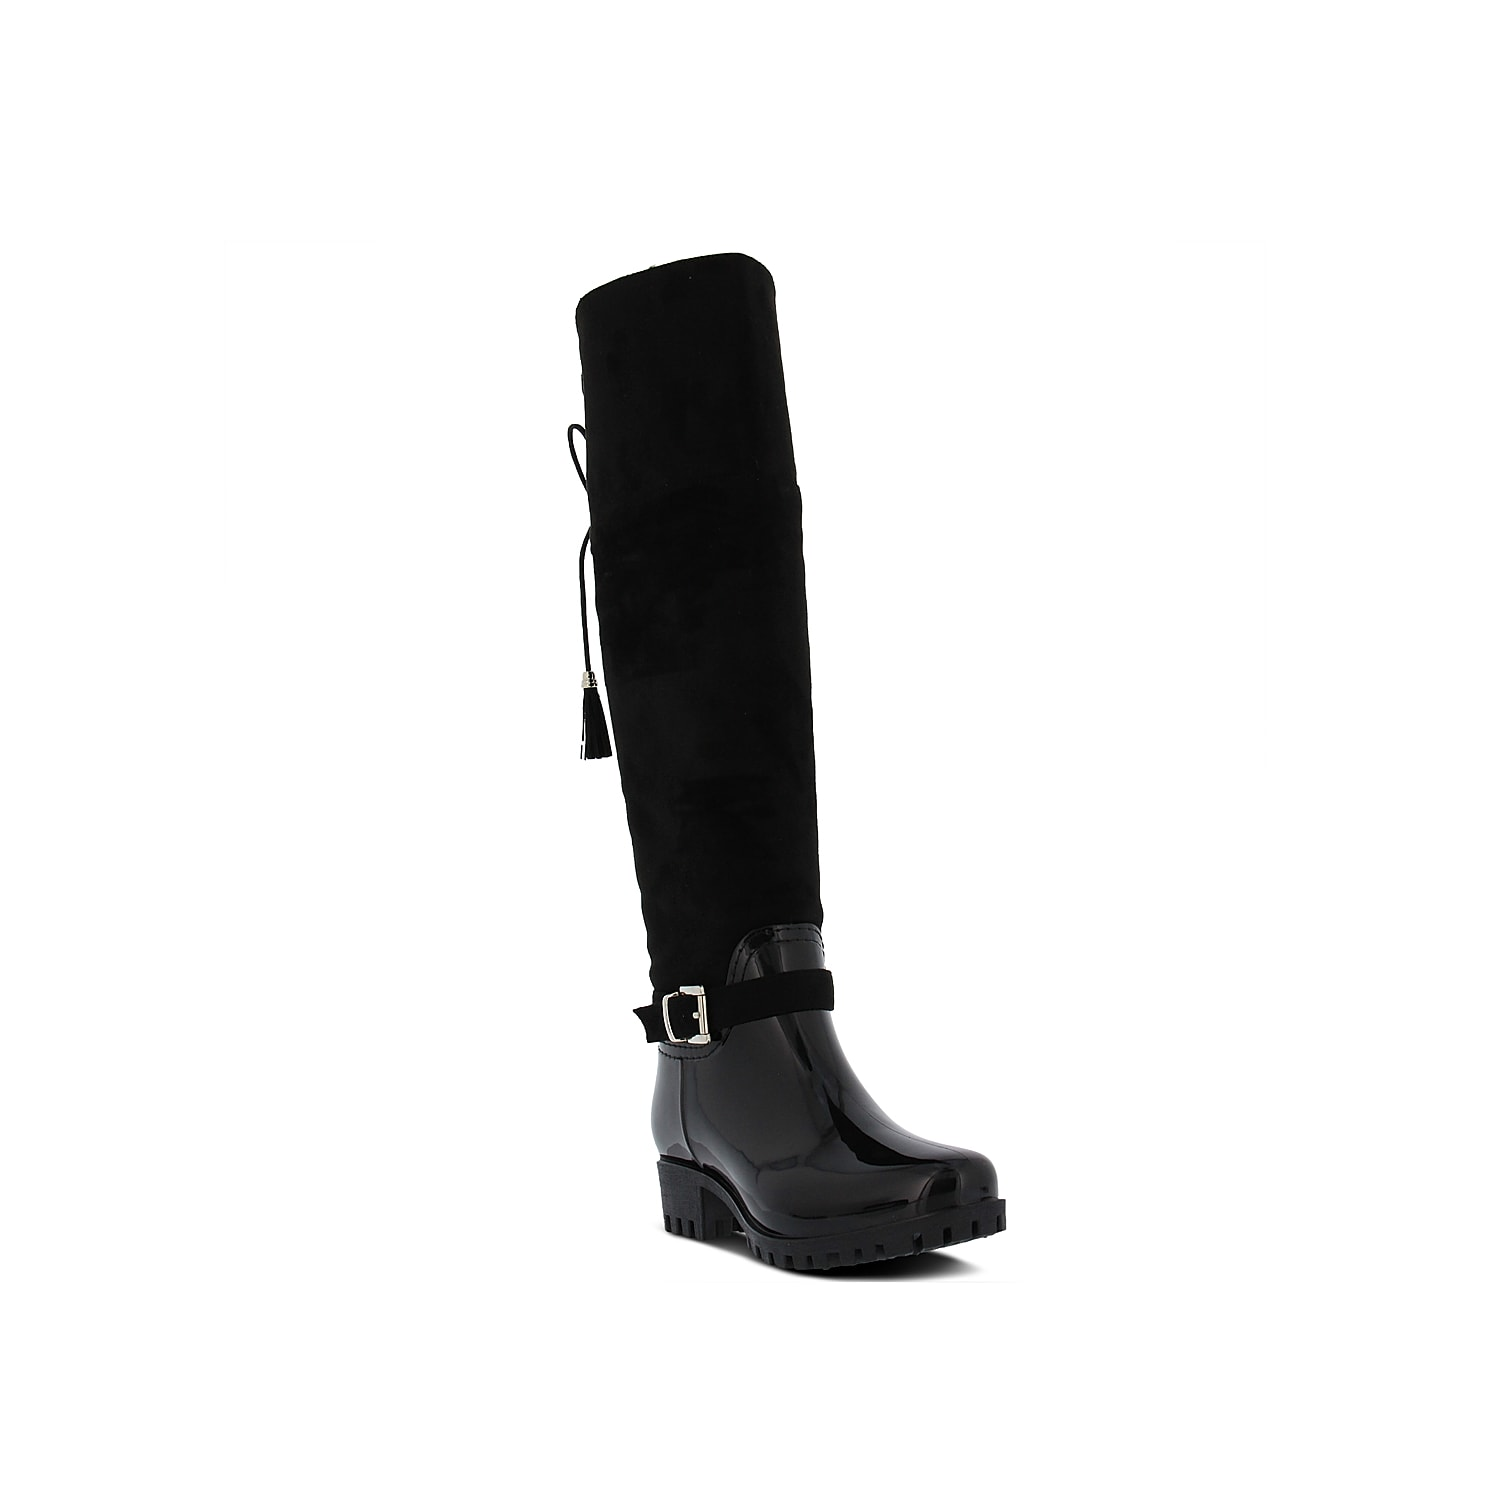 Don\\\'t let the weather ruin your chic style with the Mattie rain boot from Spring Step. A decorative buckle and tassel accent sets this knee high boot apart from the rest. Click here for Boot Measuring Guide.